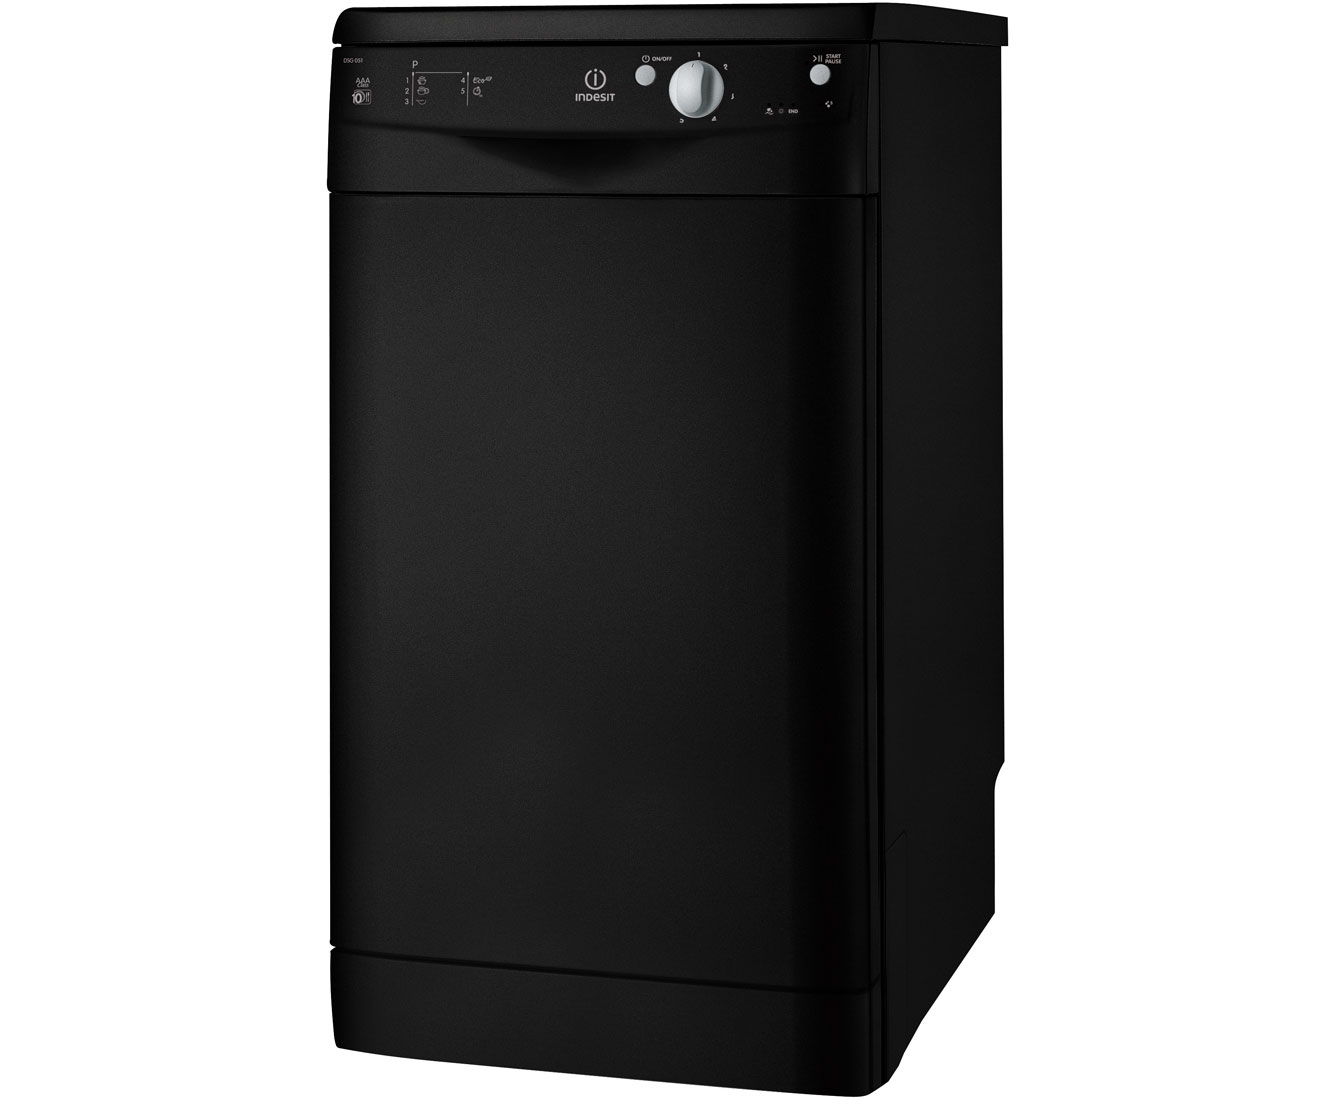 Indesit Start IDS105K Slimline Dishwasher - Black